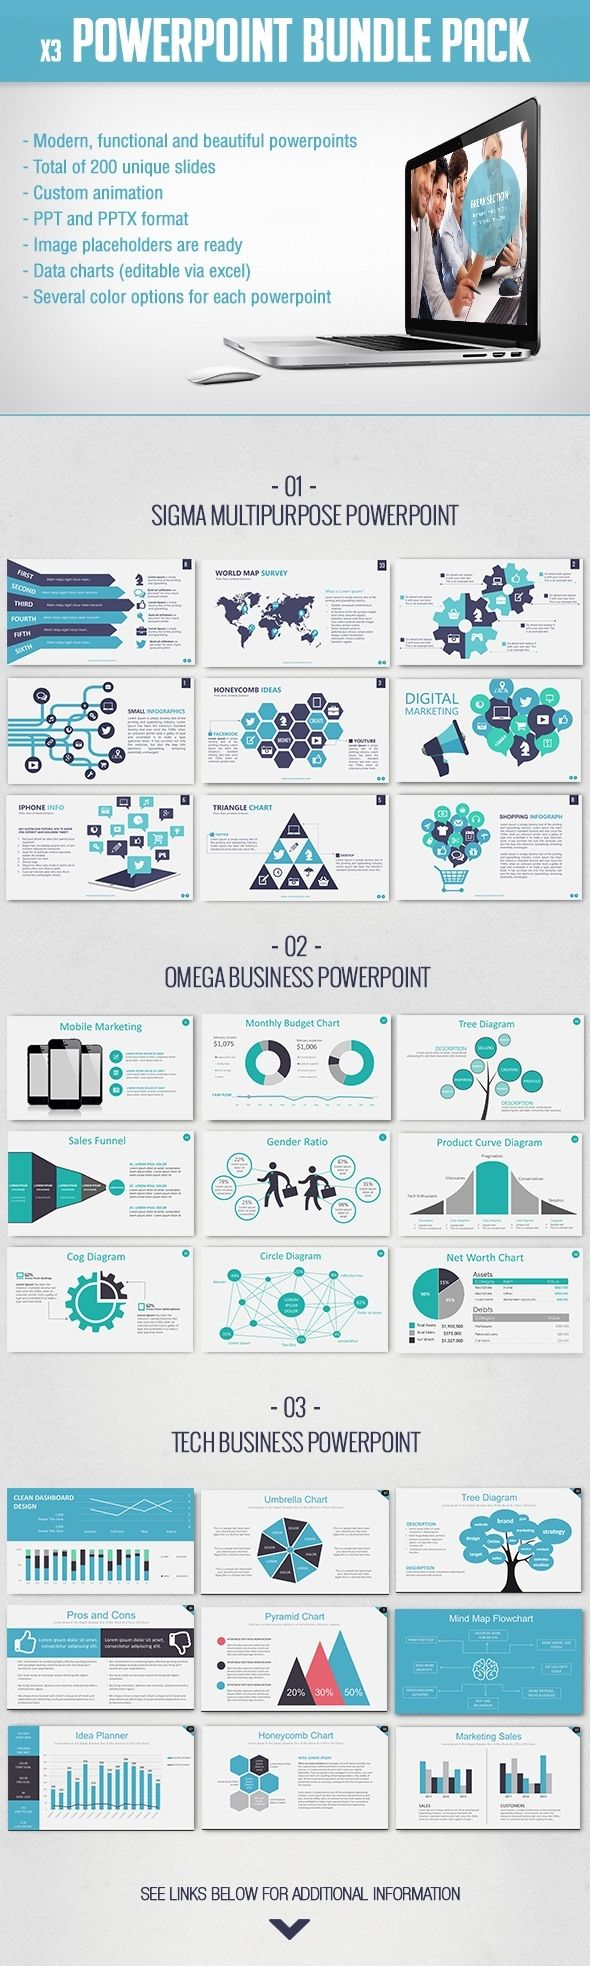 3 in 1 Powerpoint Bundle Pack (PowerPoint Templates)